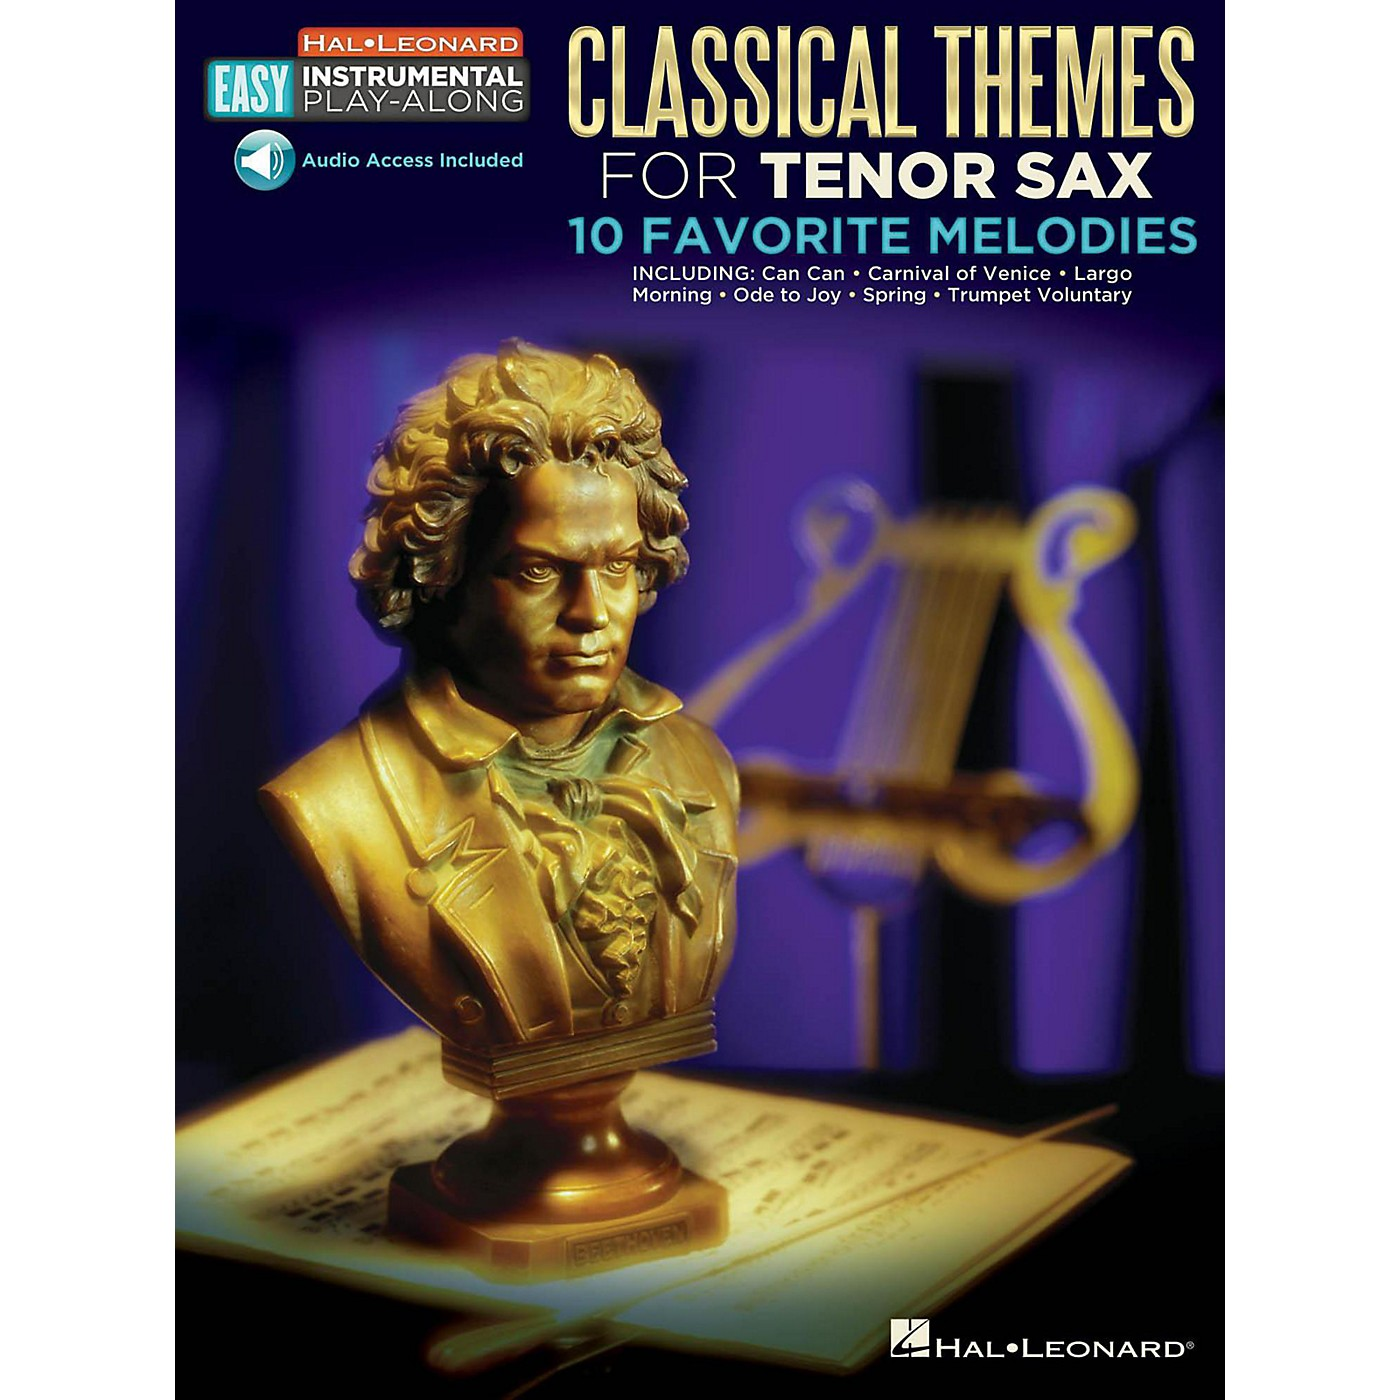 Hal Leonard Classical Themes - Tenor Sax -Easy Instrumental Play-Along Book with Online Audio Tracks thumbnail